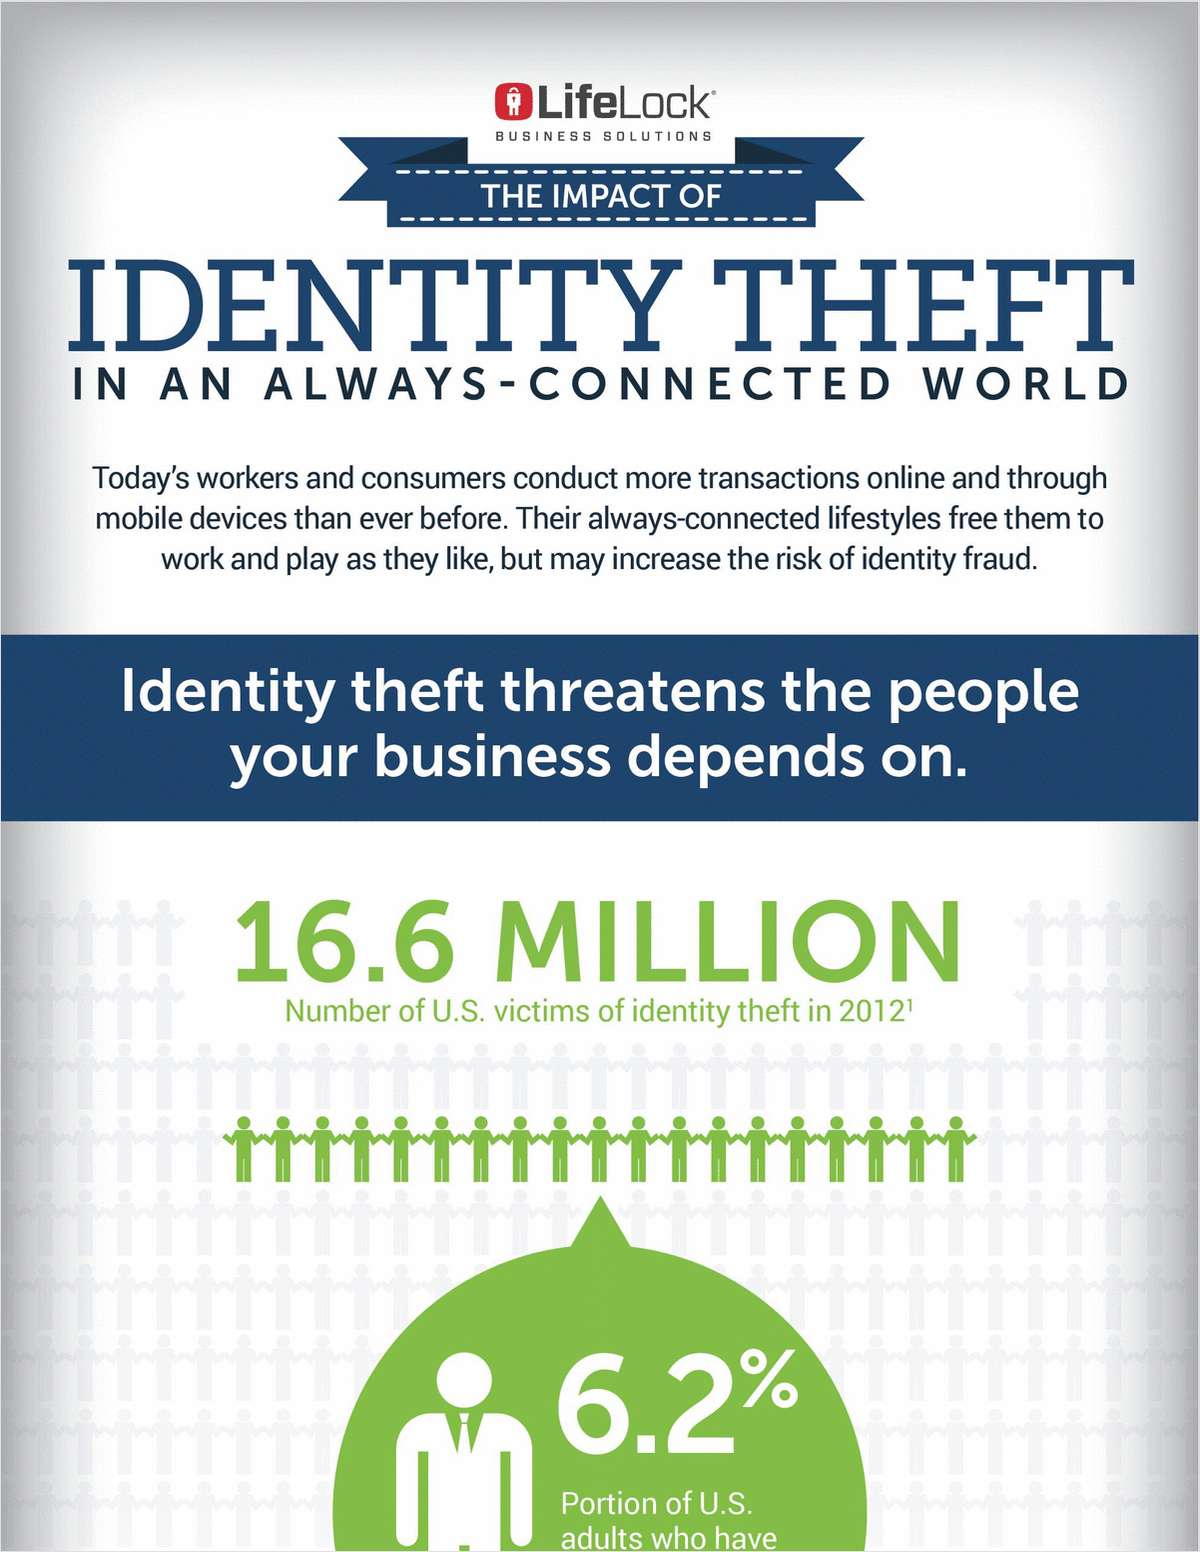 The Impact of Identity Theft in an Always-Connected World